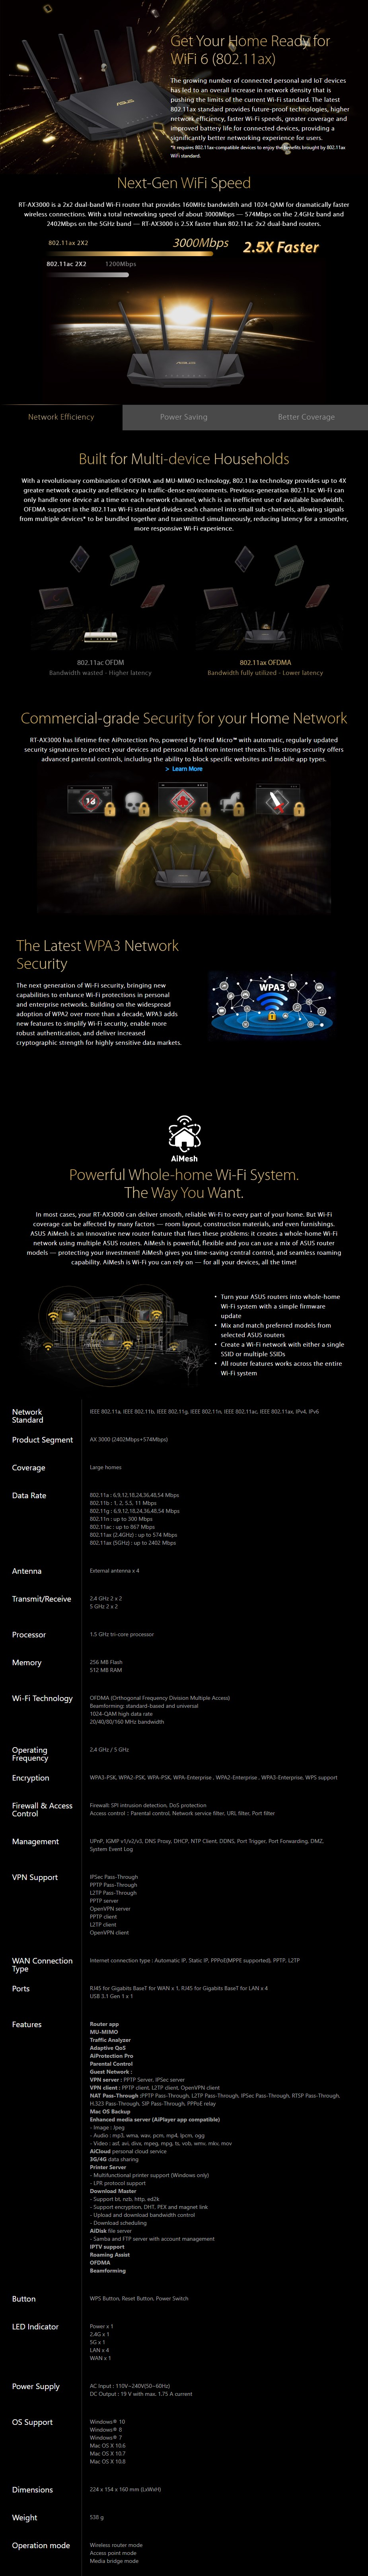 ASUS RT-AX3000 DualBand WiFi 6 802.11ax Wireless Router with MU-MIMO - Overview 1